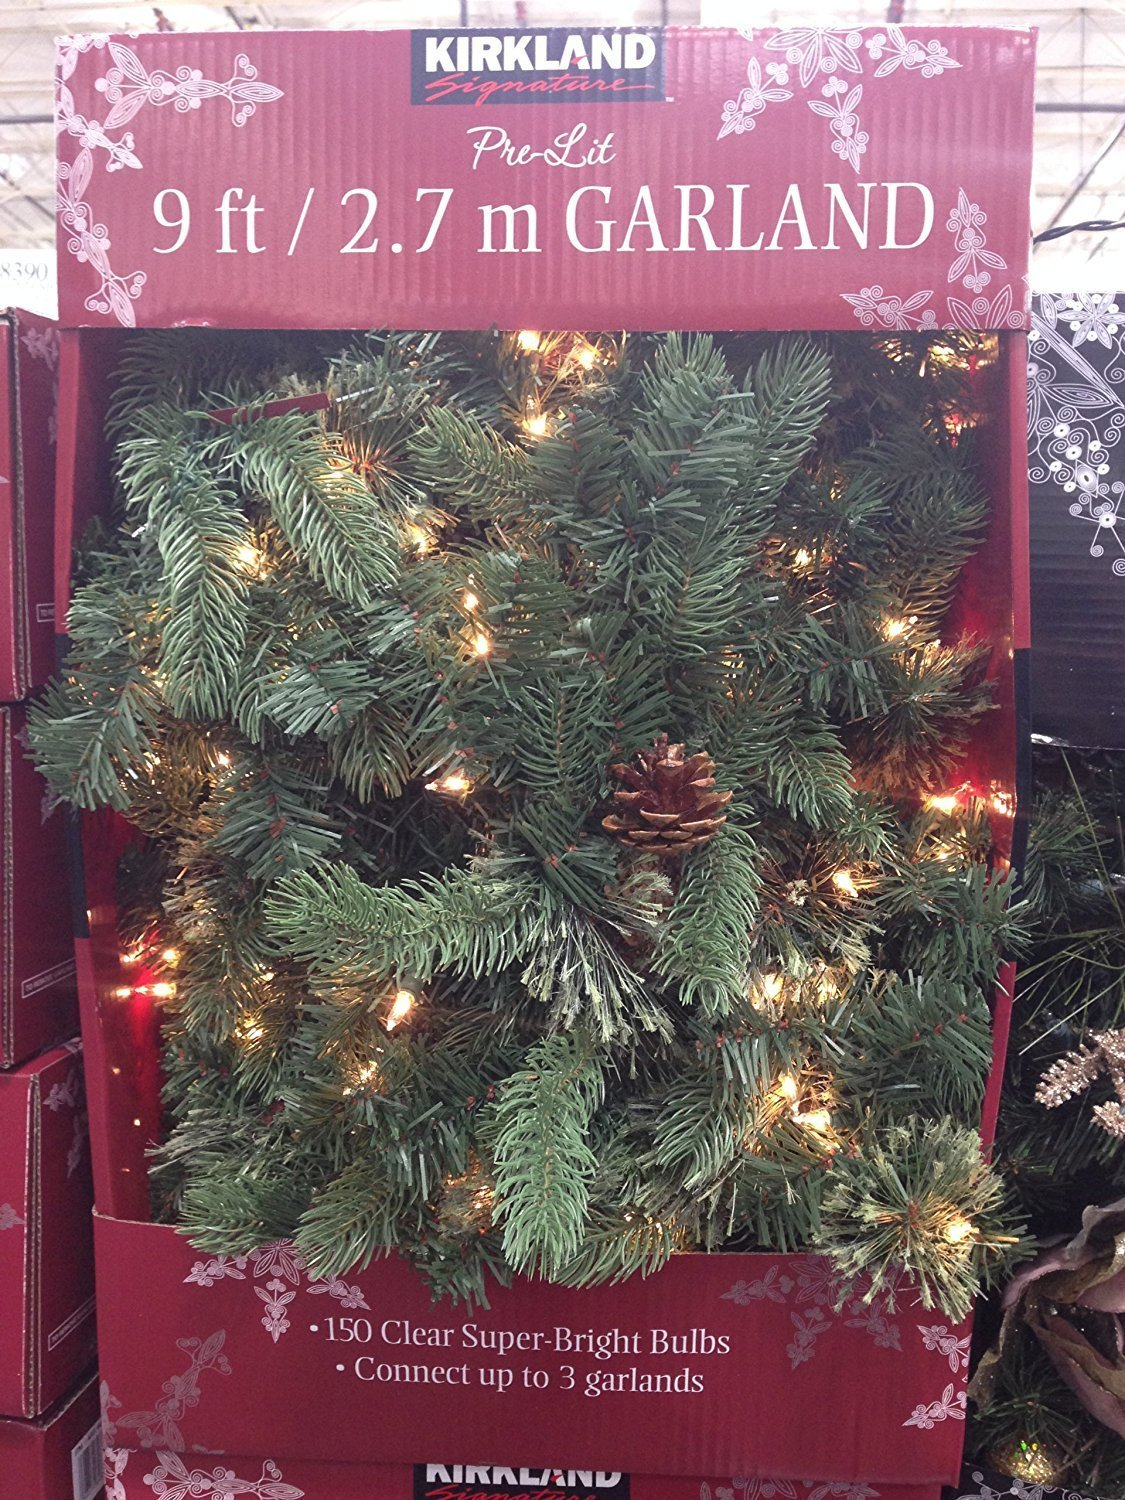 Amazon.com: Kirkland Signature 9 ft Pre-Lit Garland: Jardín ...